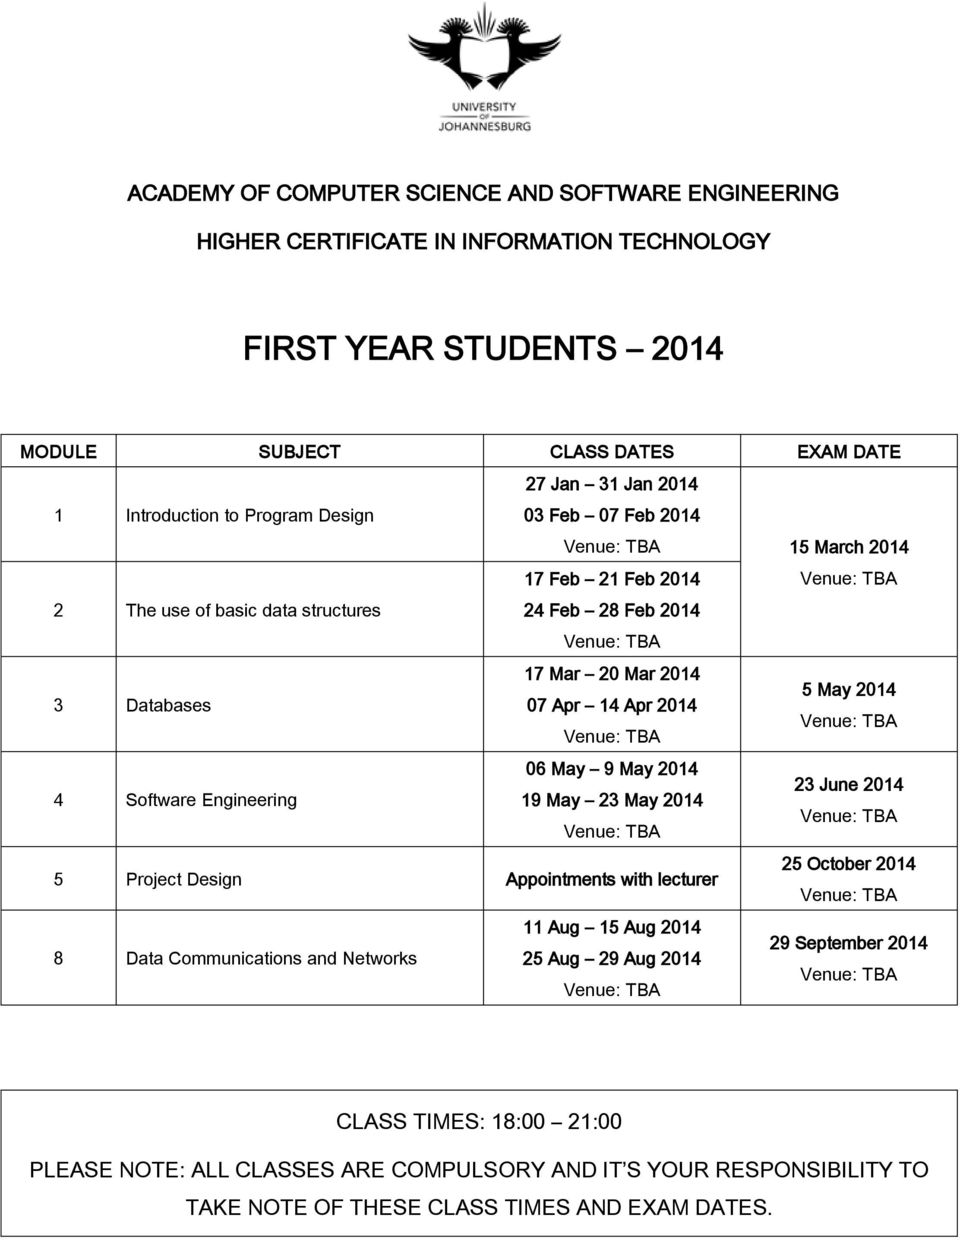 Apr 2014 4 Software Engineering 06 May 9 May 2014 23 June 2014 19 May 23 May 2014 5 Project Design Appointments with lecturer 25 October 2014 8 Data Communications and Networks 11 Aug 15